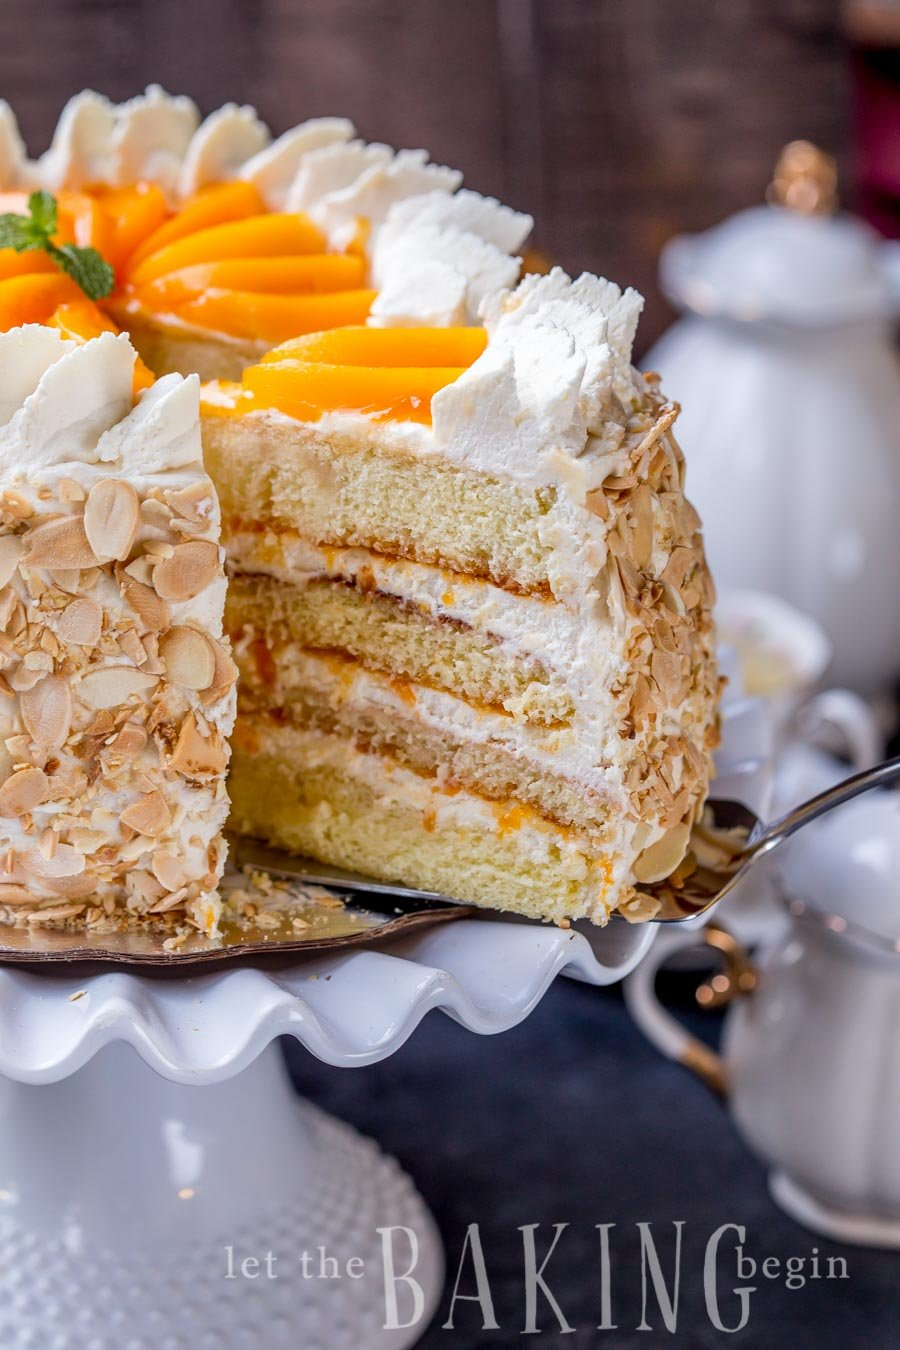 Peaches and Cream Cake Recipe - Easy Dessert made of Soft layers of Sponge Cake with Chunky Peach Preserve and lightly sweetened Whipped Cream. Roasted Almonds add a nice pleasant crunch for a textural contrast. | By Let the Baking Begin!